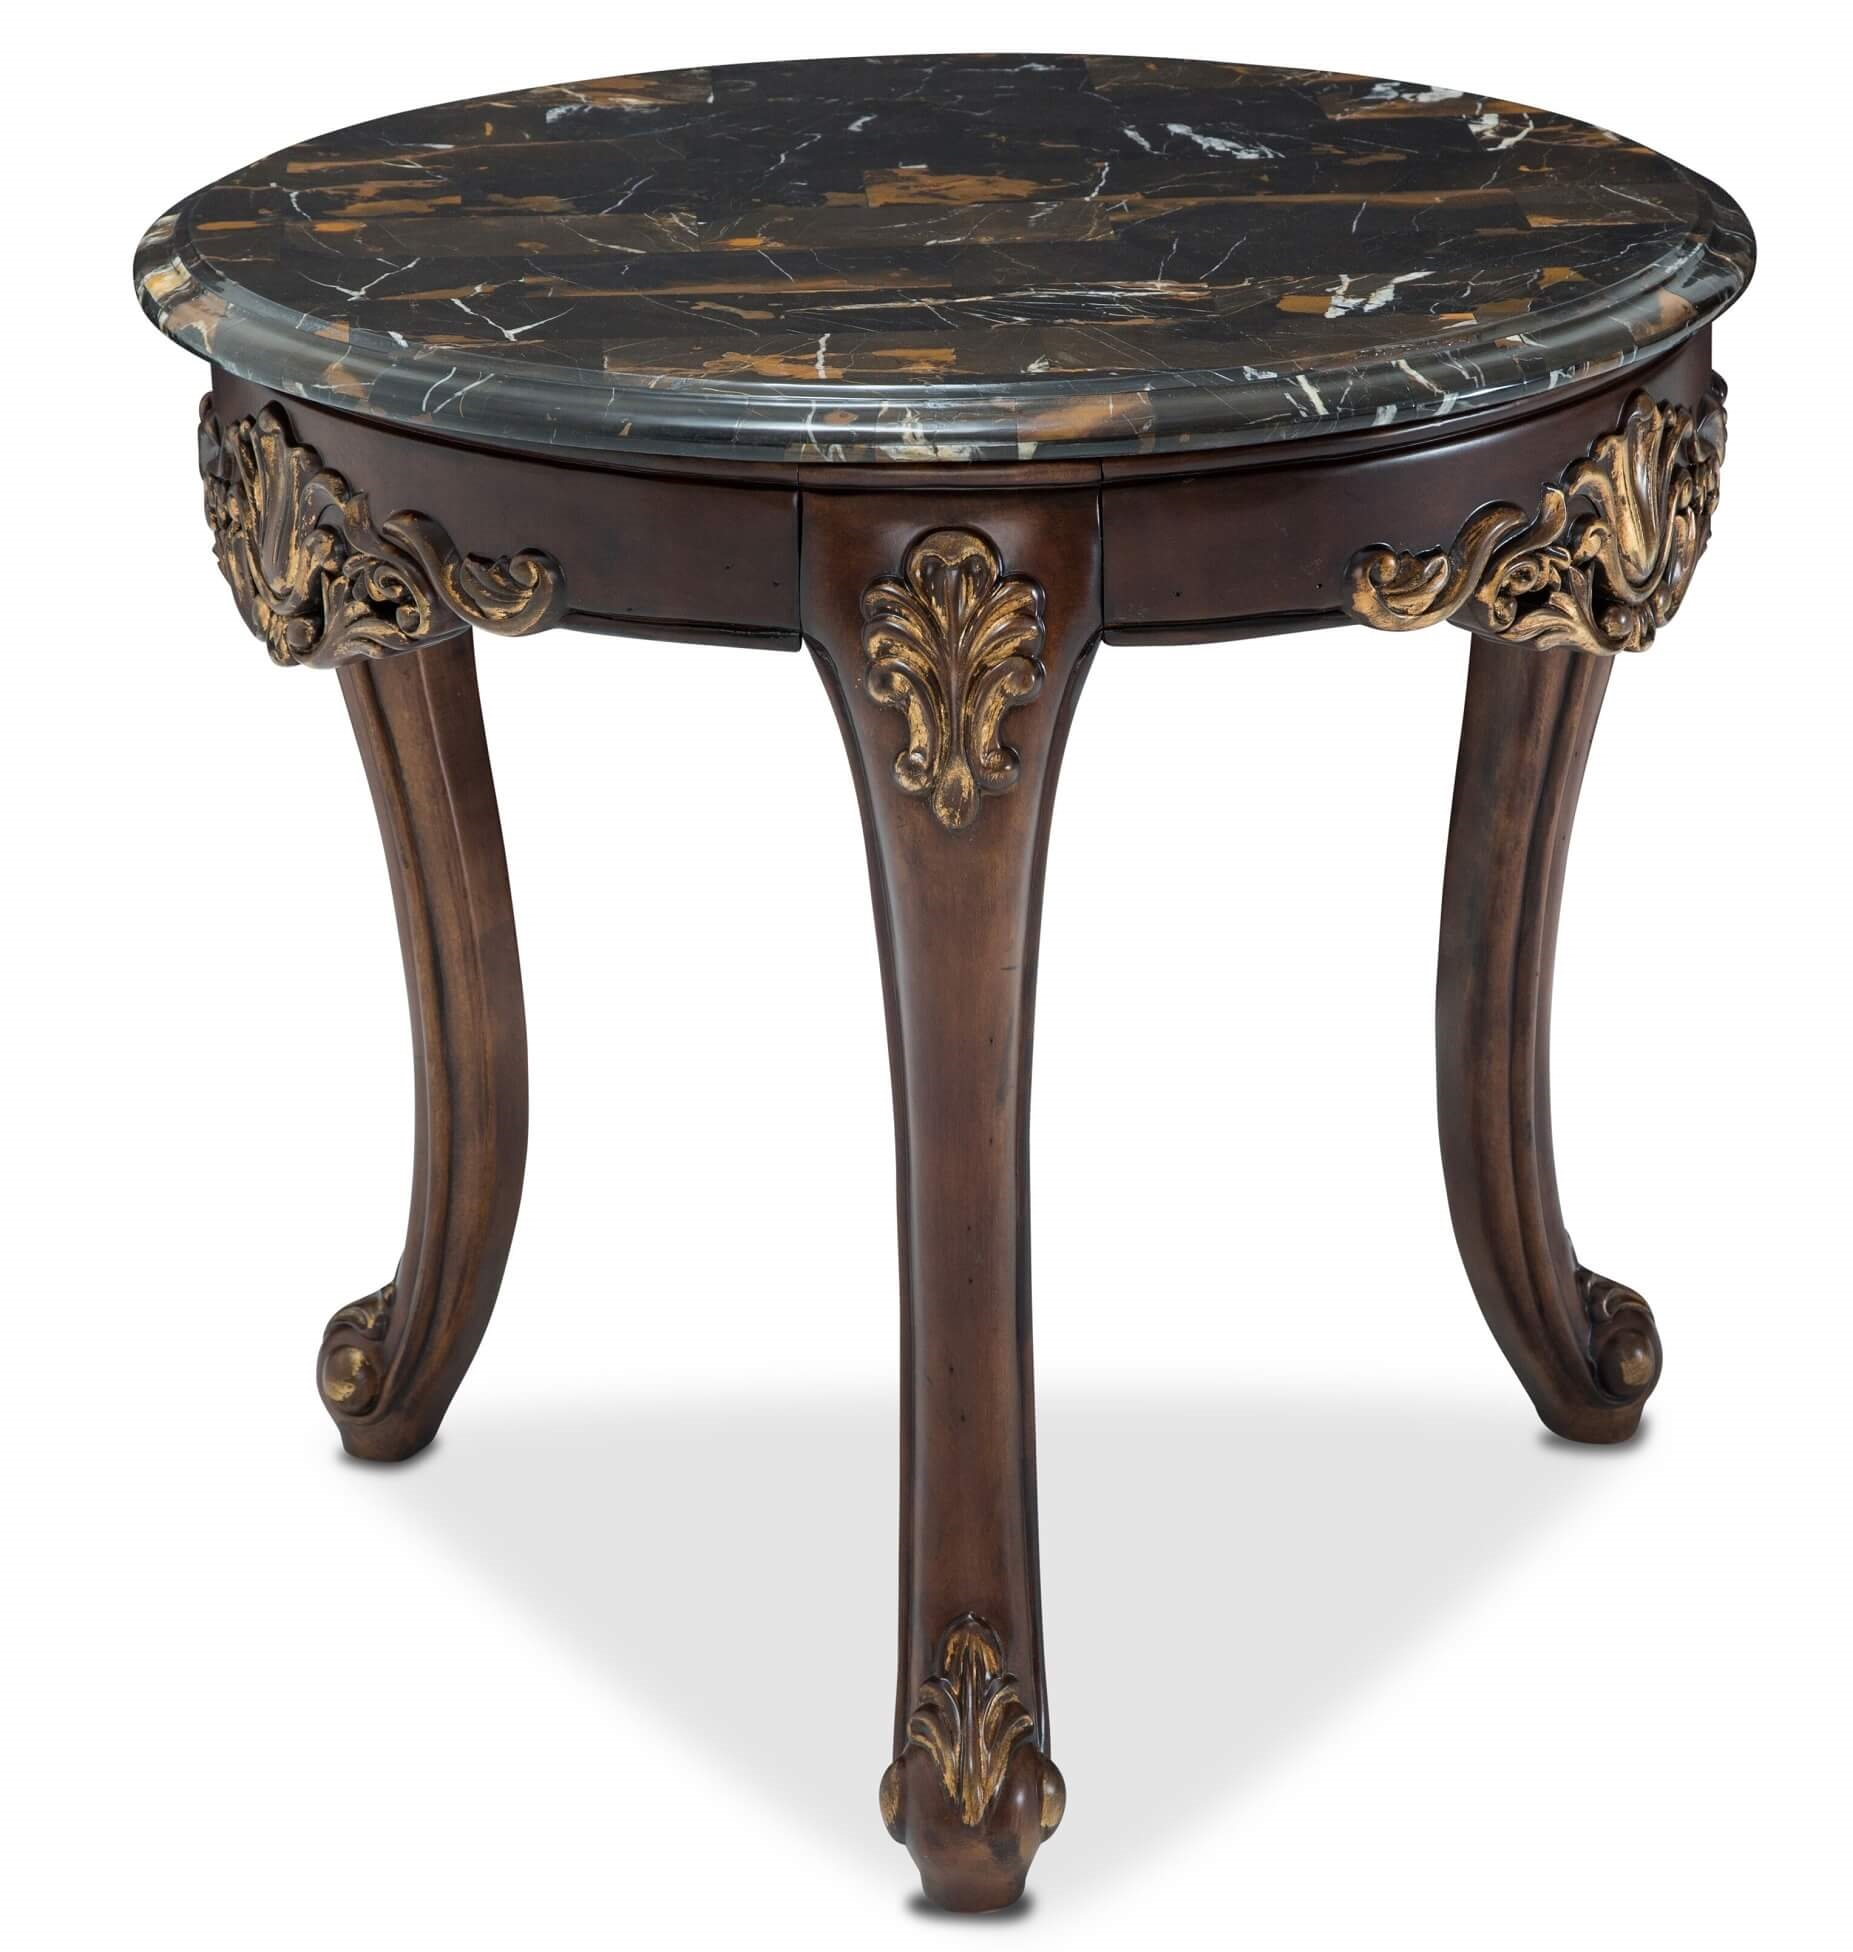 marble top end tables house design french accent table aico villa como round portobello finish nate berkus gold with black umbrella base wood leg extenders drum throne pearl oval